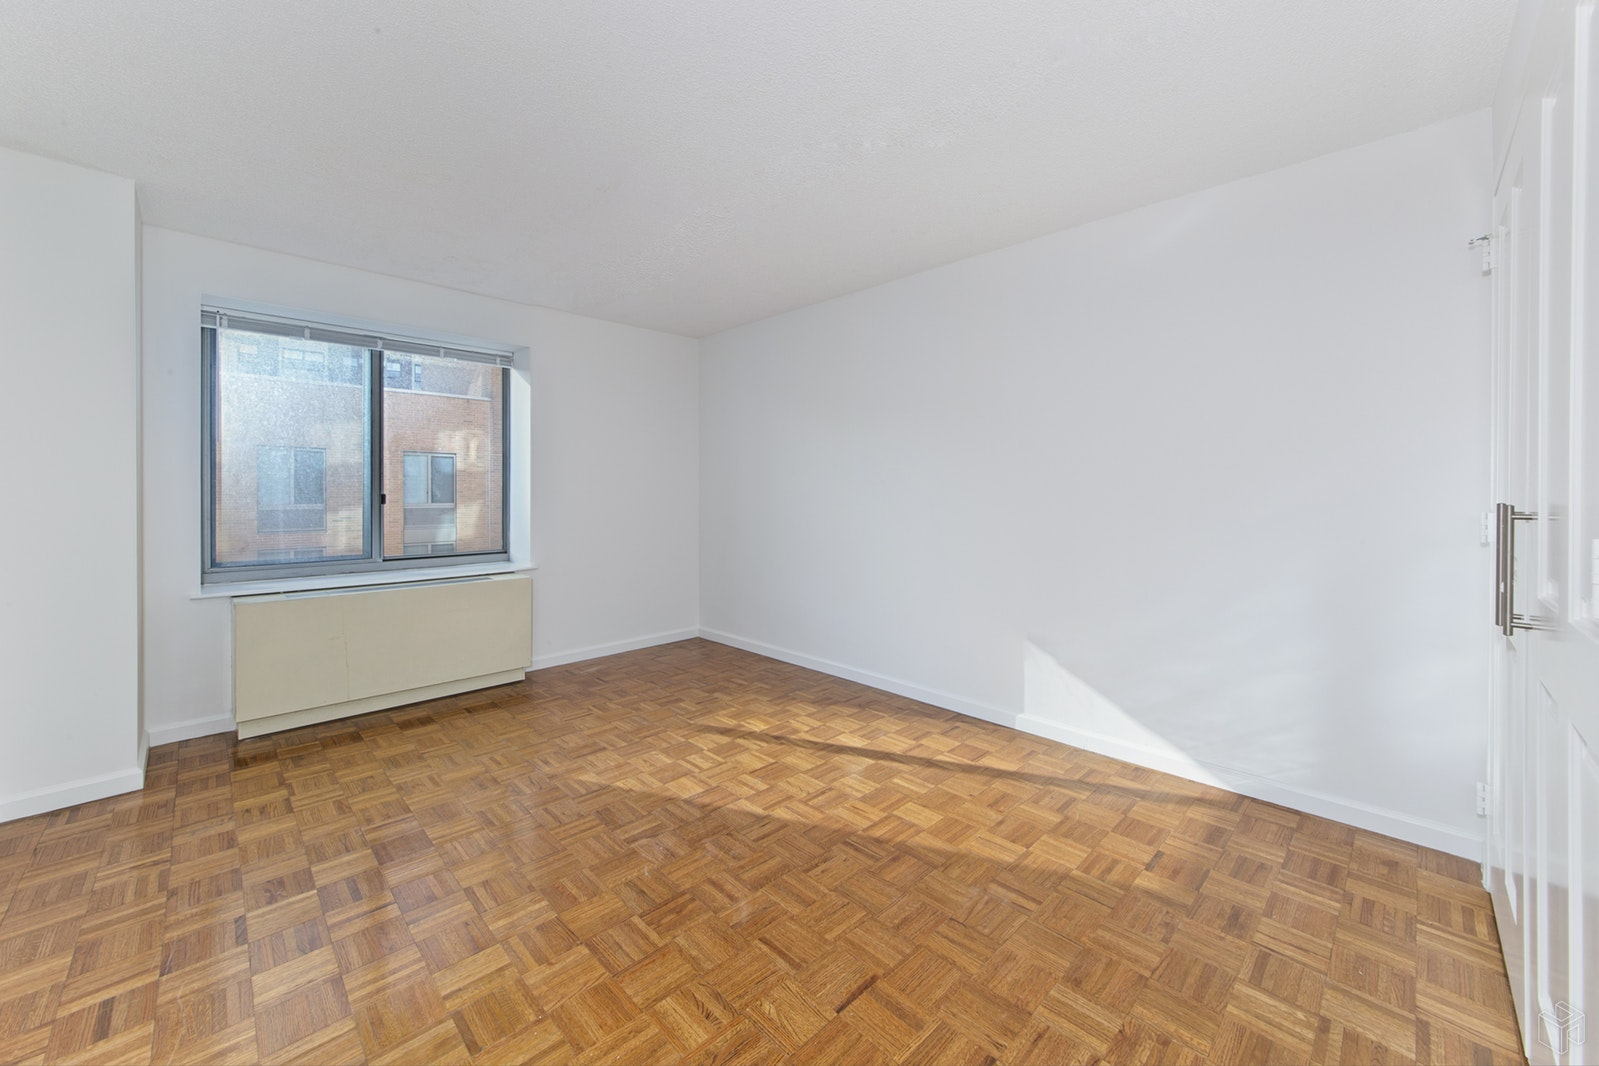 300 WEST 135TH STREET 7J, Central Harlem, $3,450, Web #: 19307818